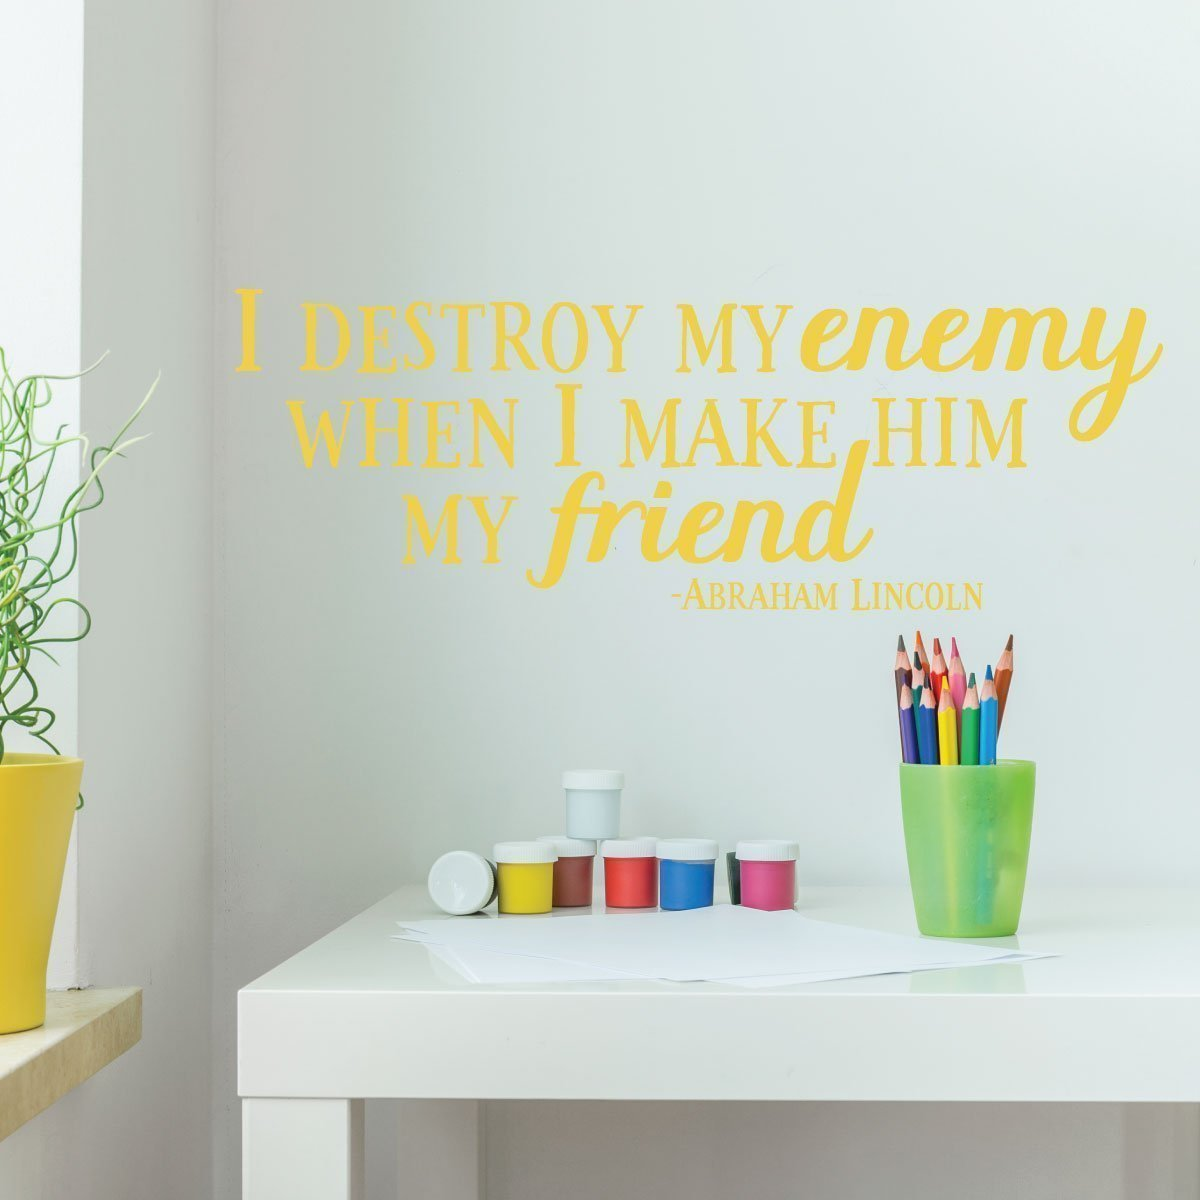 Friendship Quotes Wall Decor - Abraham Lincoln - I Destroy My Enemy - Vinyl Wall Decal Sign Decoration Motivational Patriotic Quotes for Schools Preschools Libraries Teachers and Home